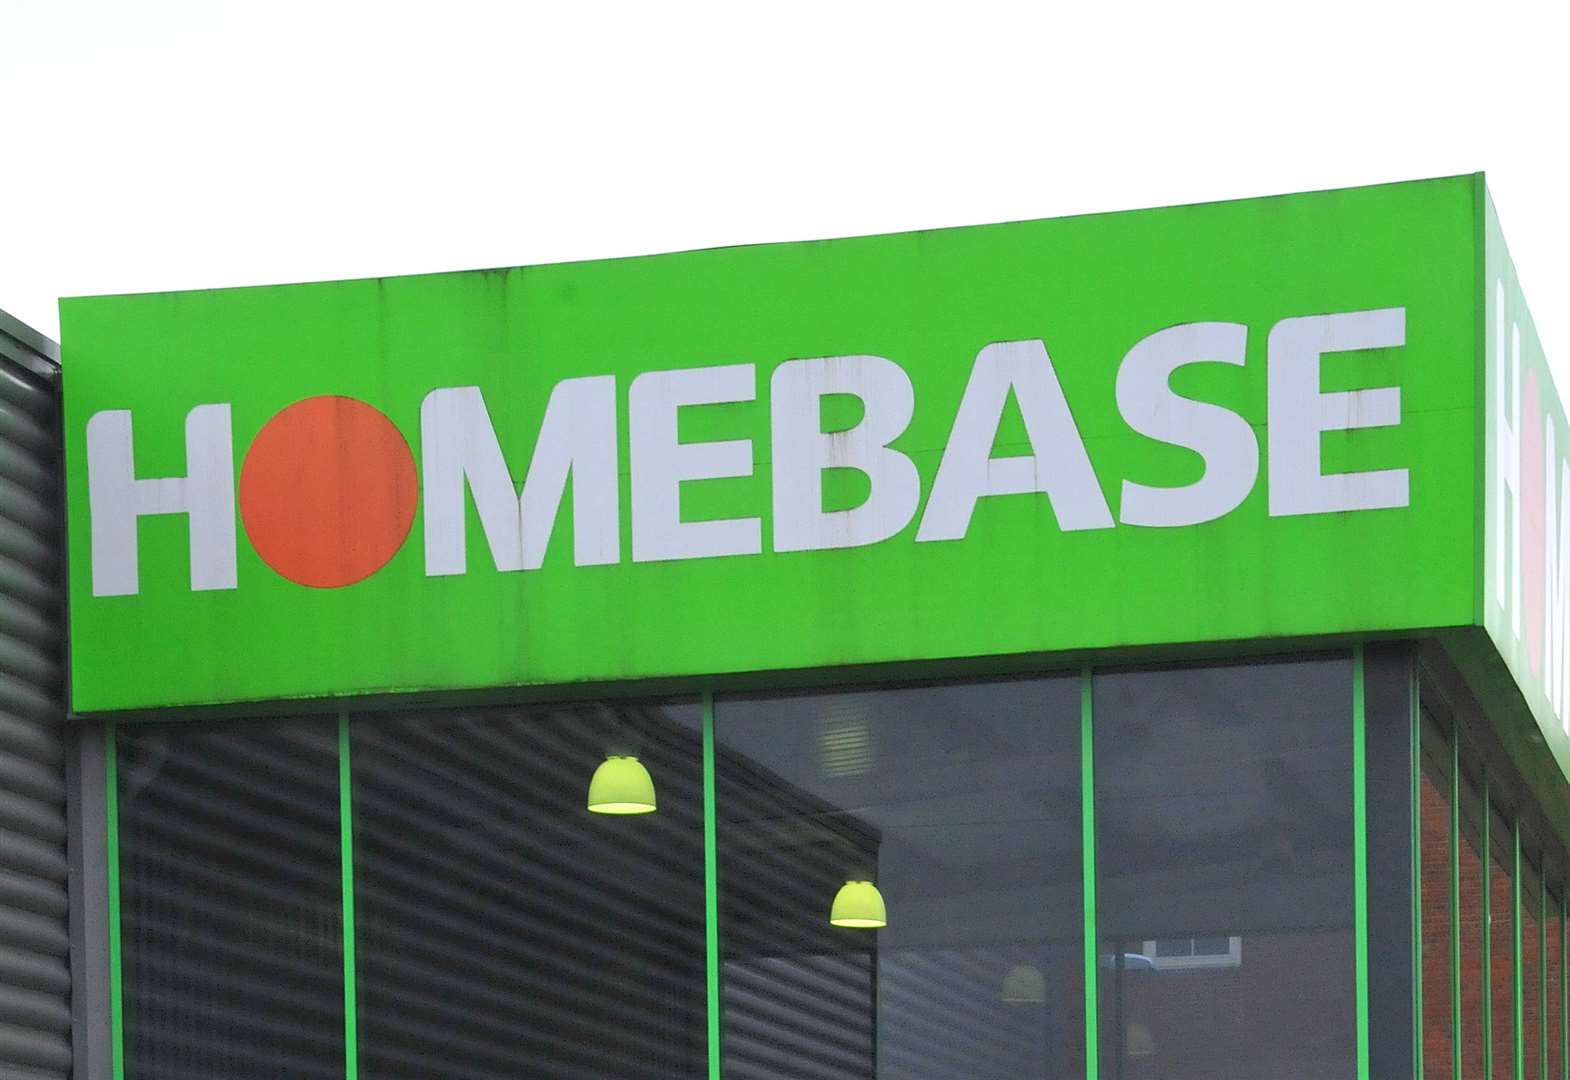 Homebase closure plan spares its Bury store